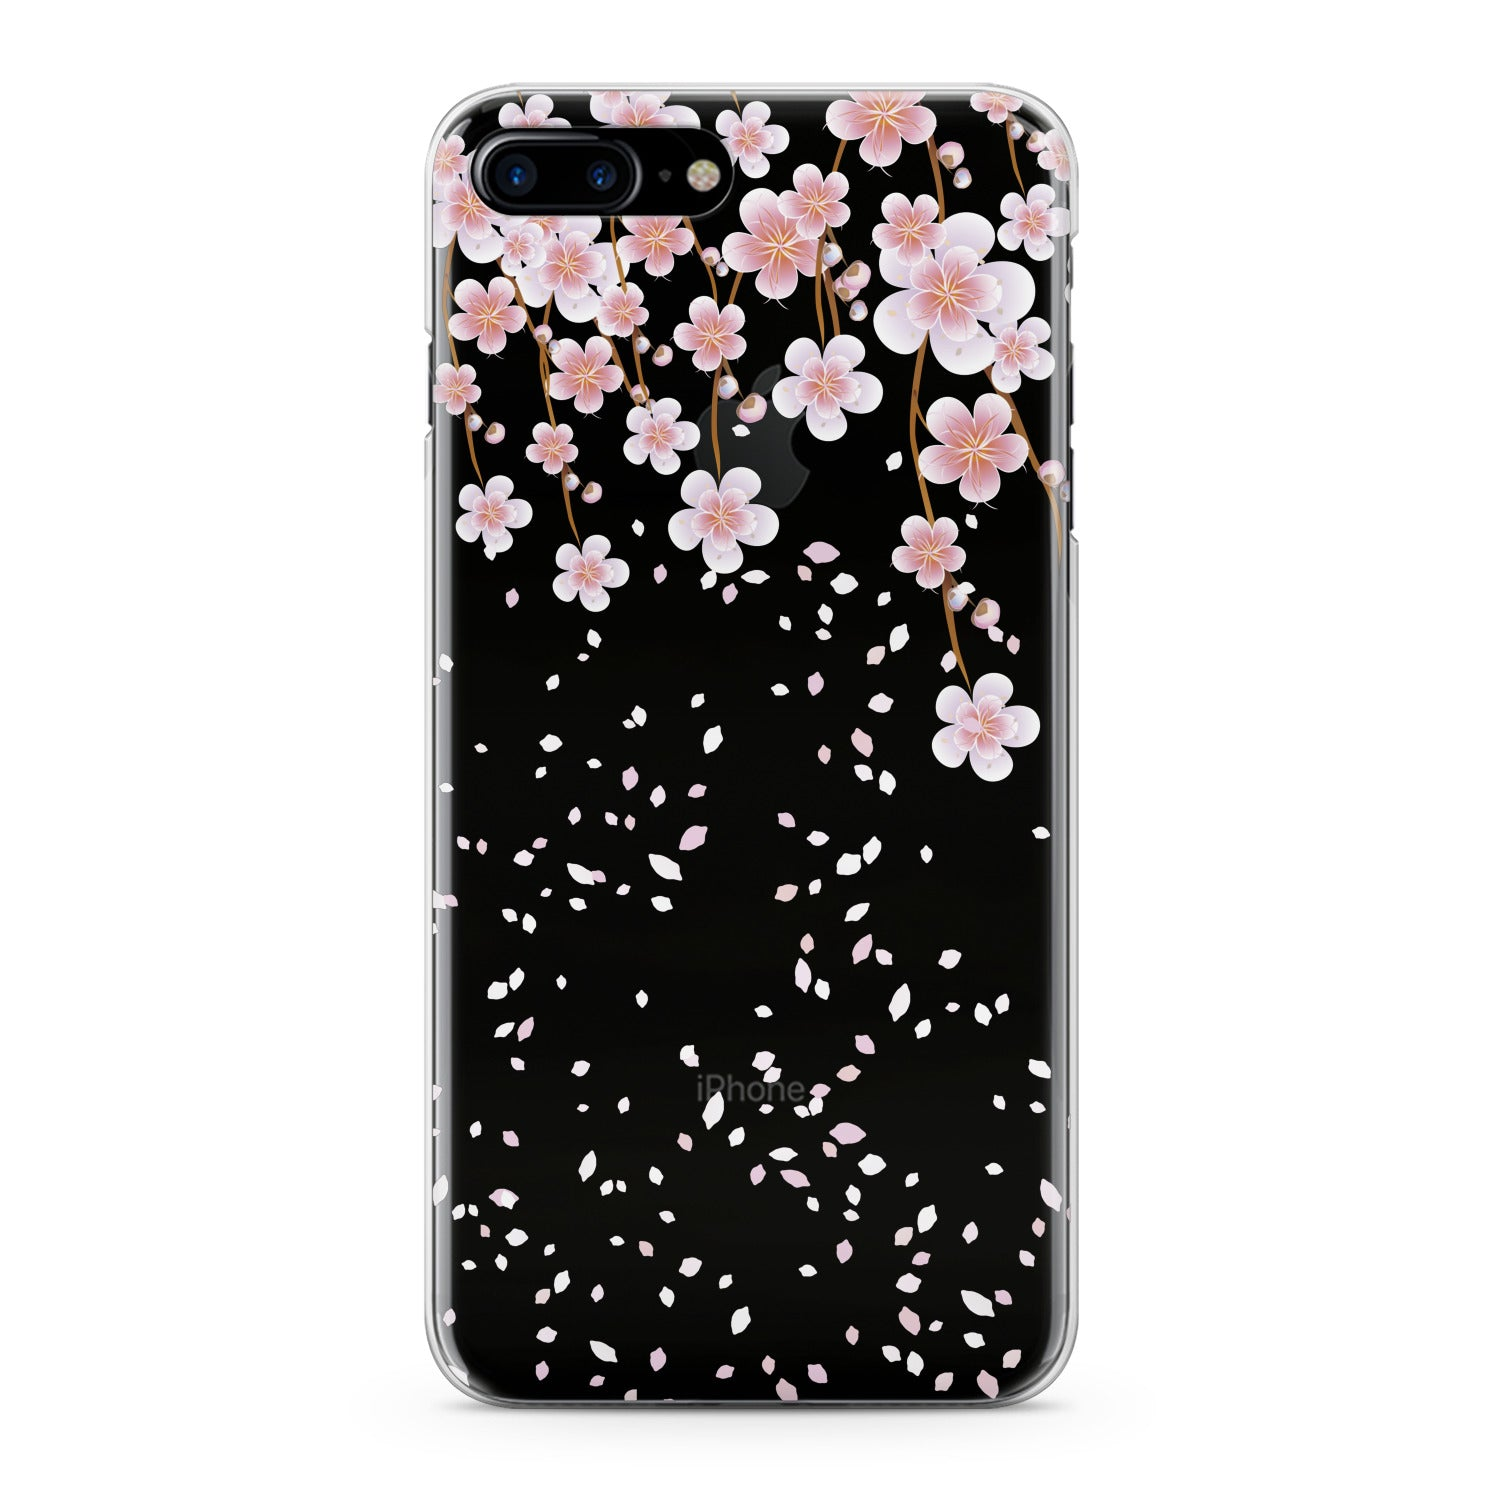 Lex Altern Gentle Pink Flowers Phone Case for your iPhone & Android phone.